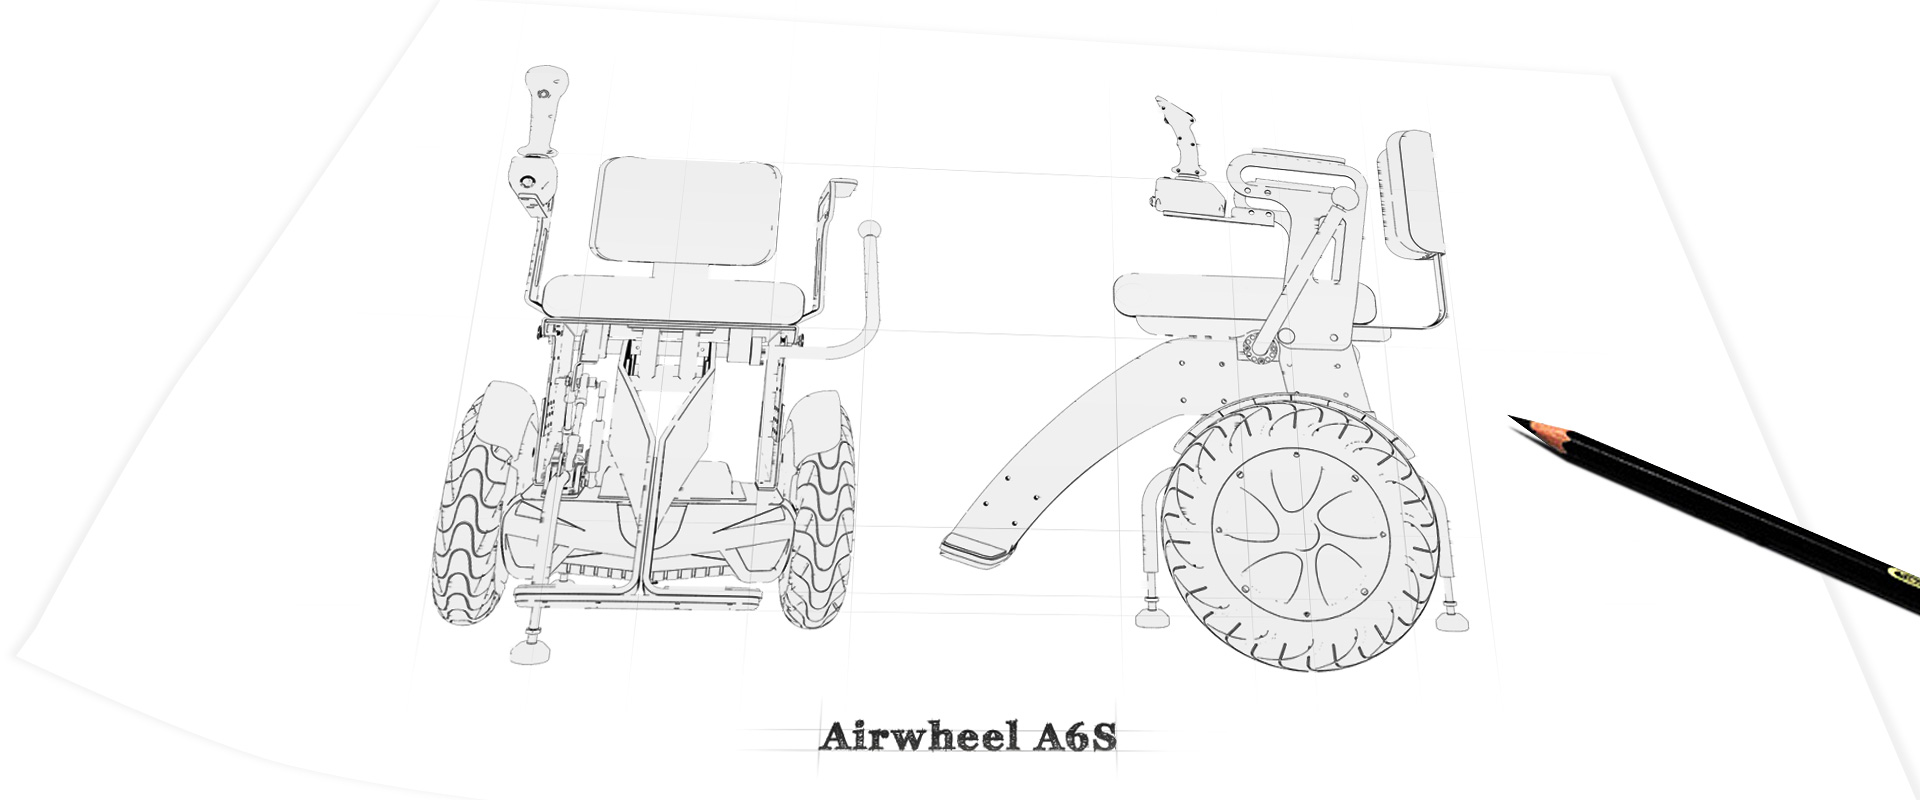 Airwheel A6S motorized wheelchair